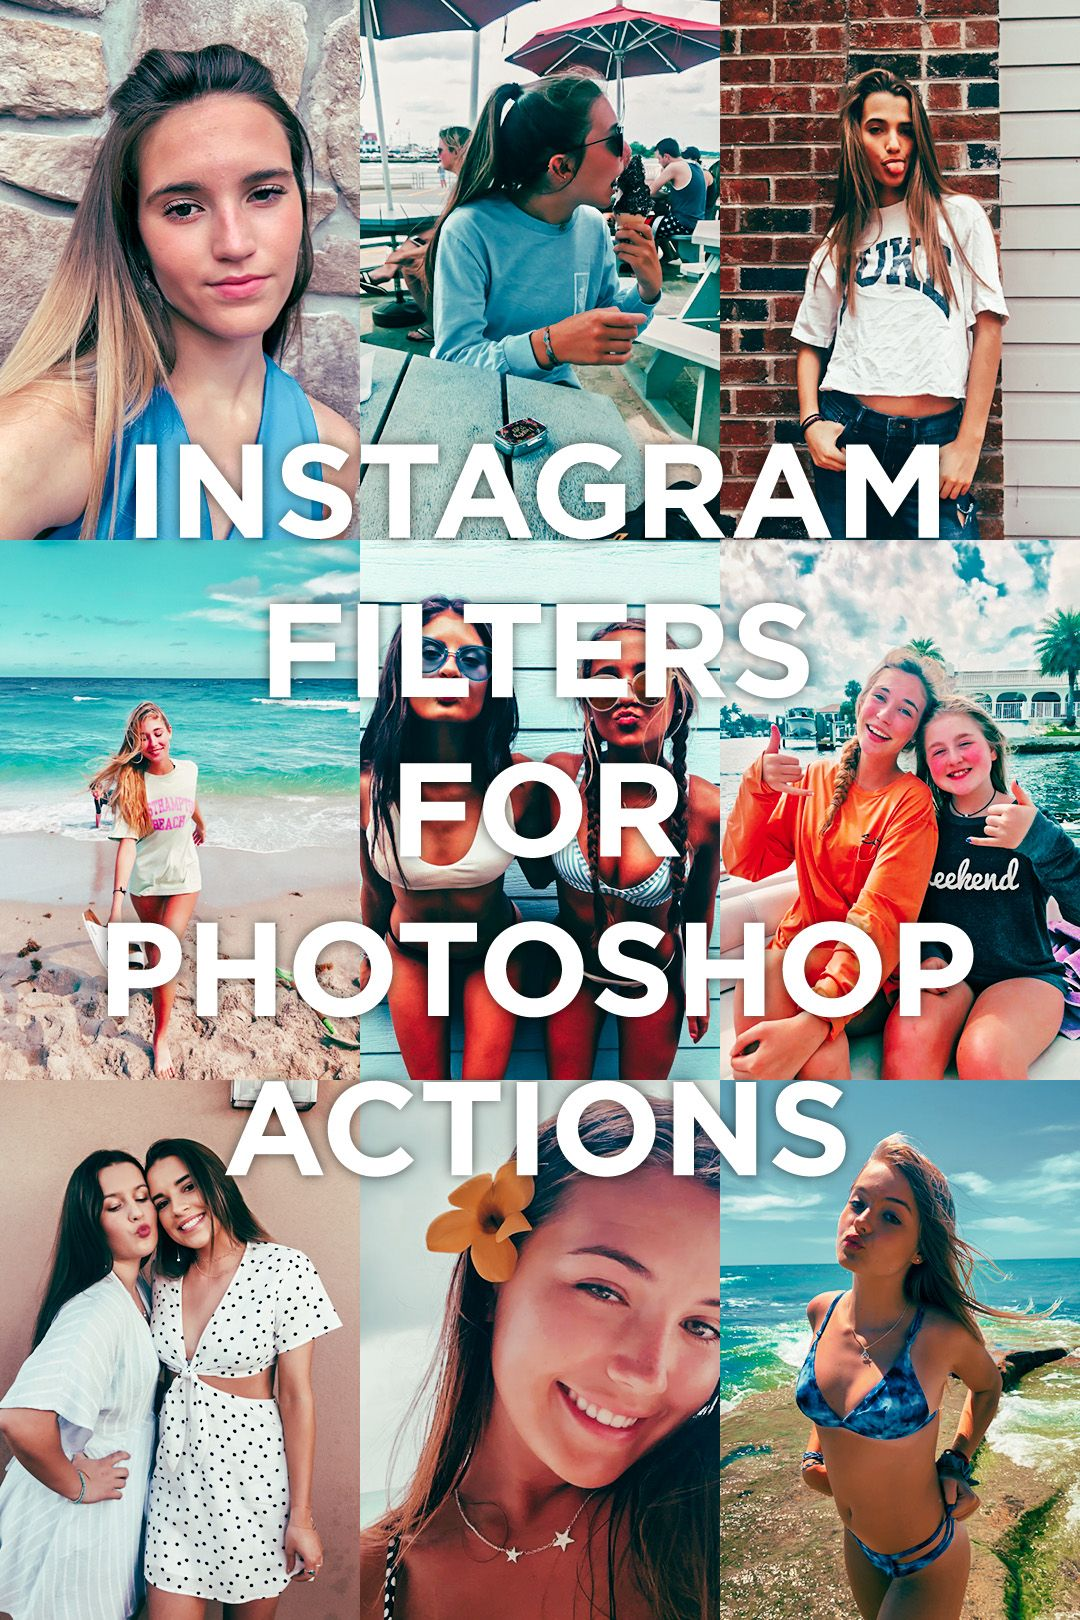 Instagram filter action in 2020 picture